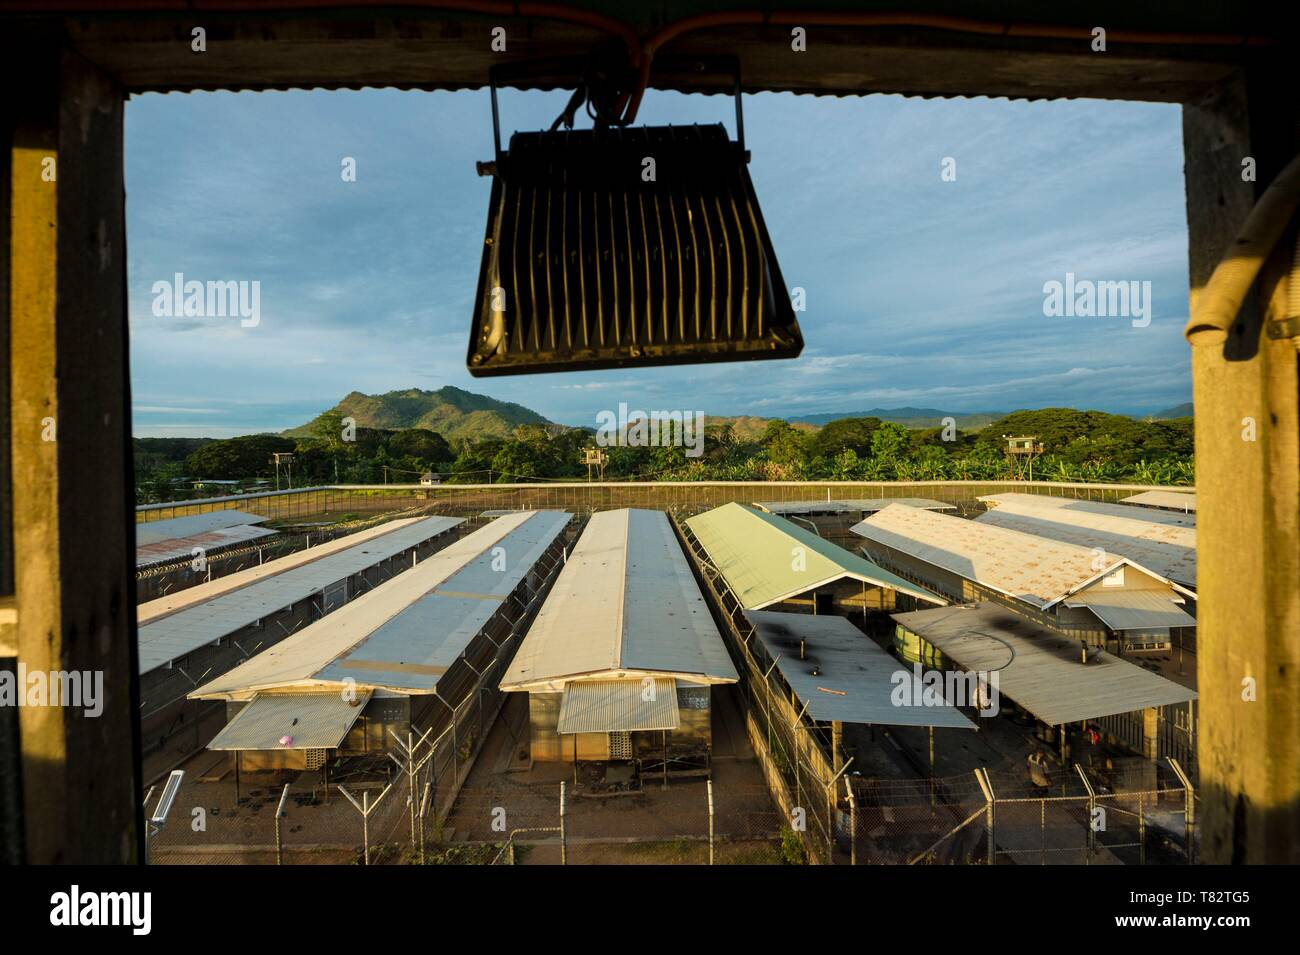 Papua New Guinea, Gulf of Papua, National Capital District, Port Moresby City, Bomana Prison, Maximum Security Area - Stock Image